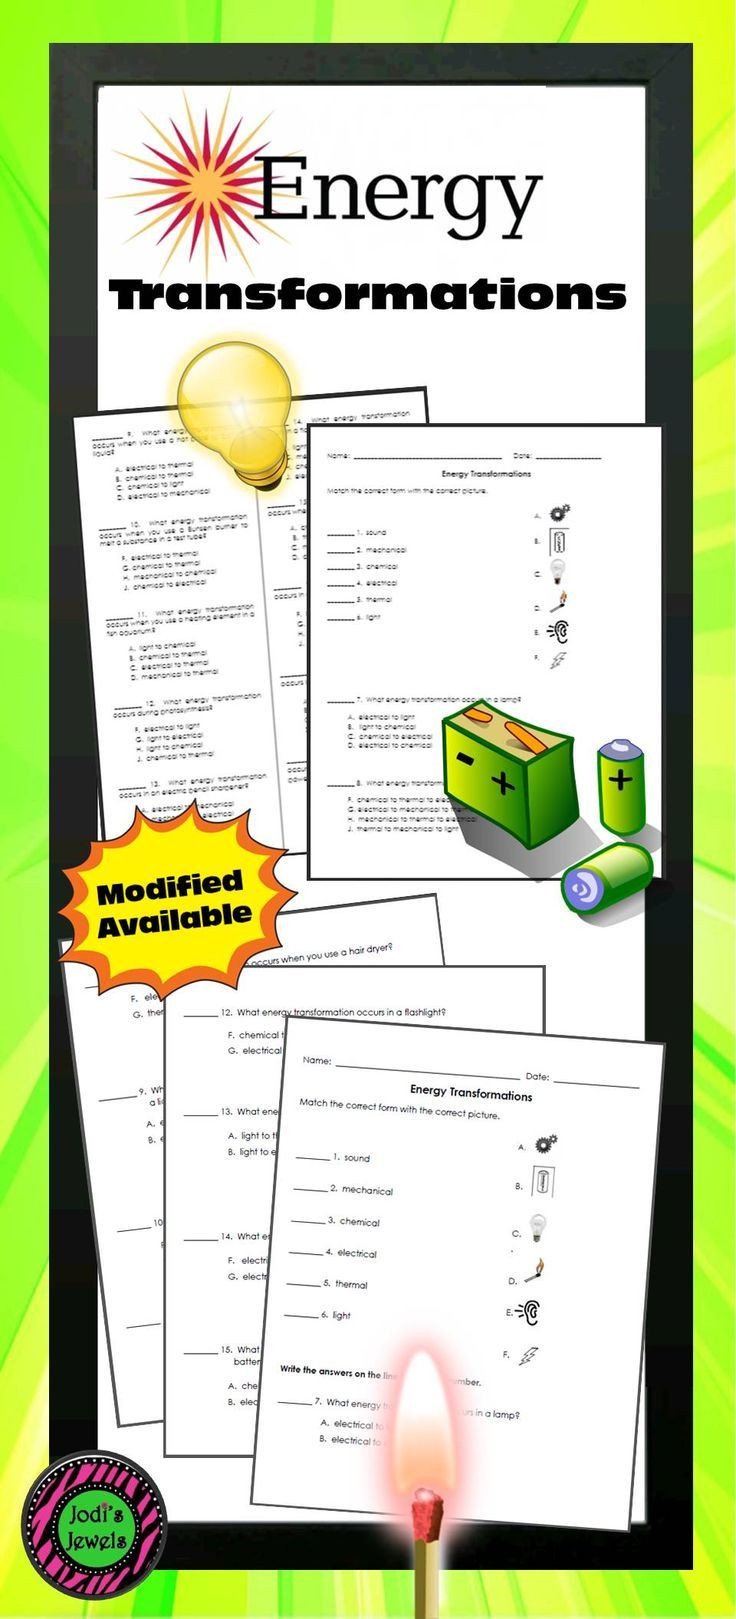 Energy Transformation Worksheet Middle School Students Will Practice Types Of Energy Transformations